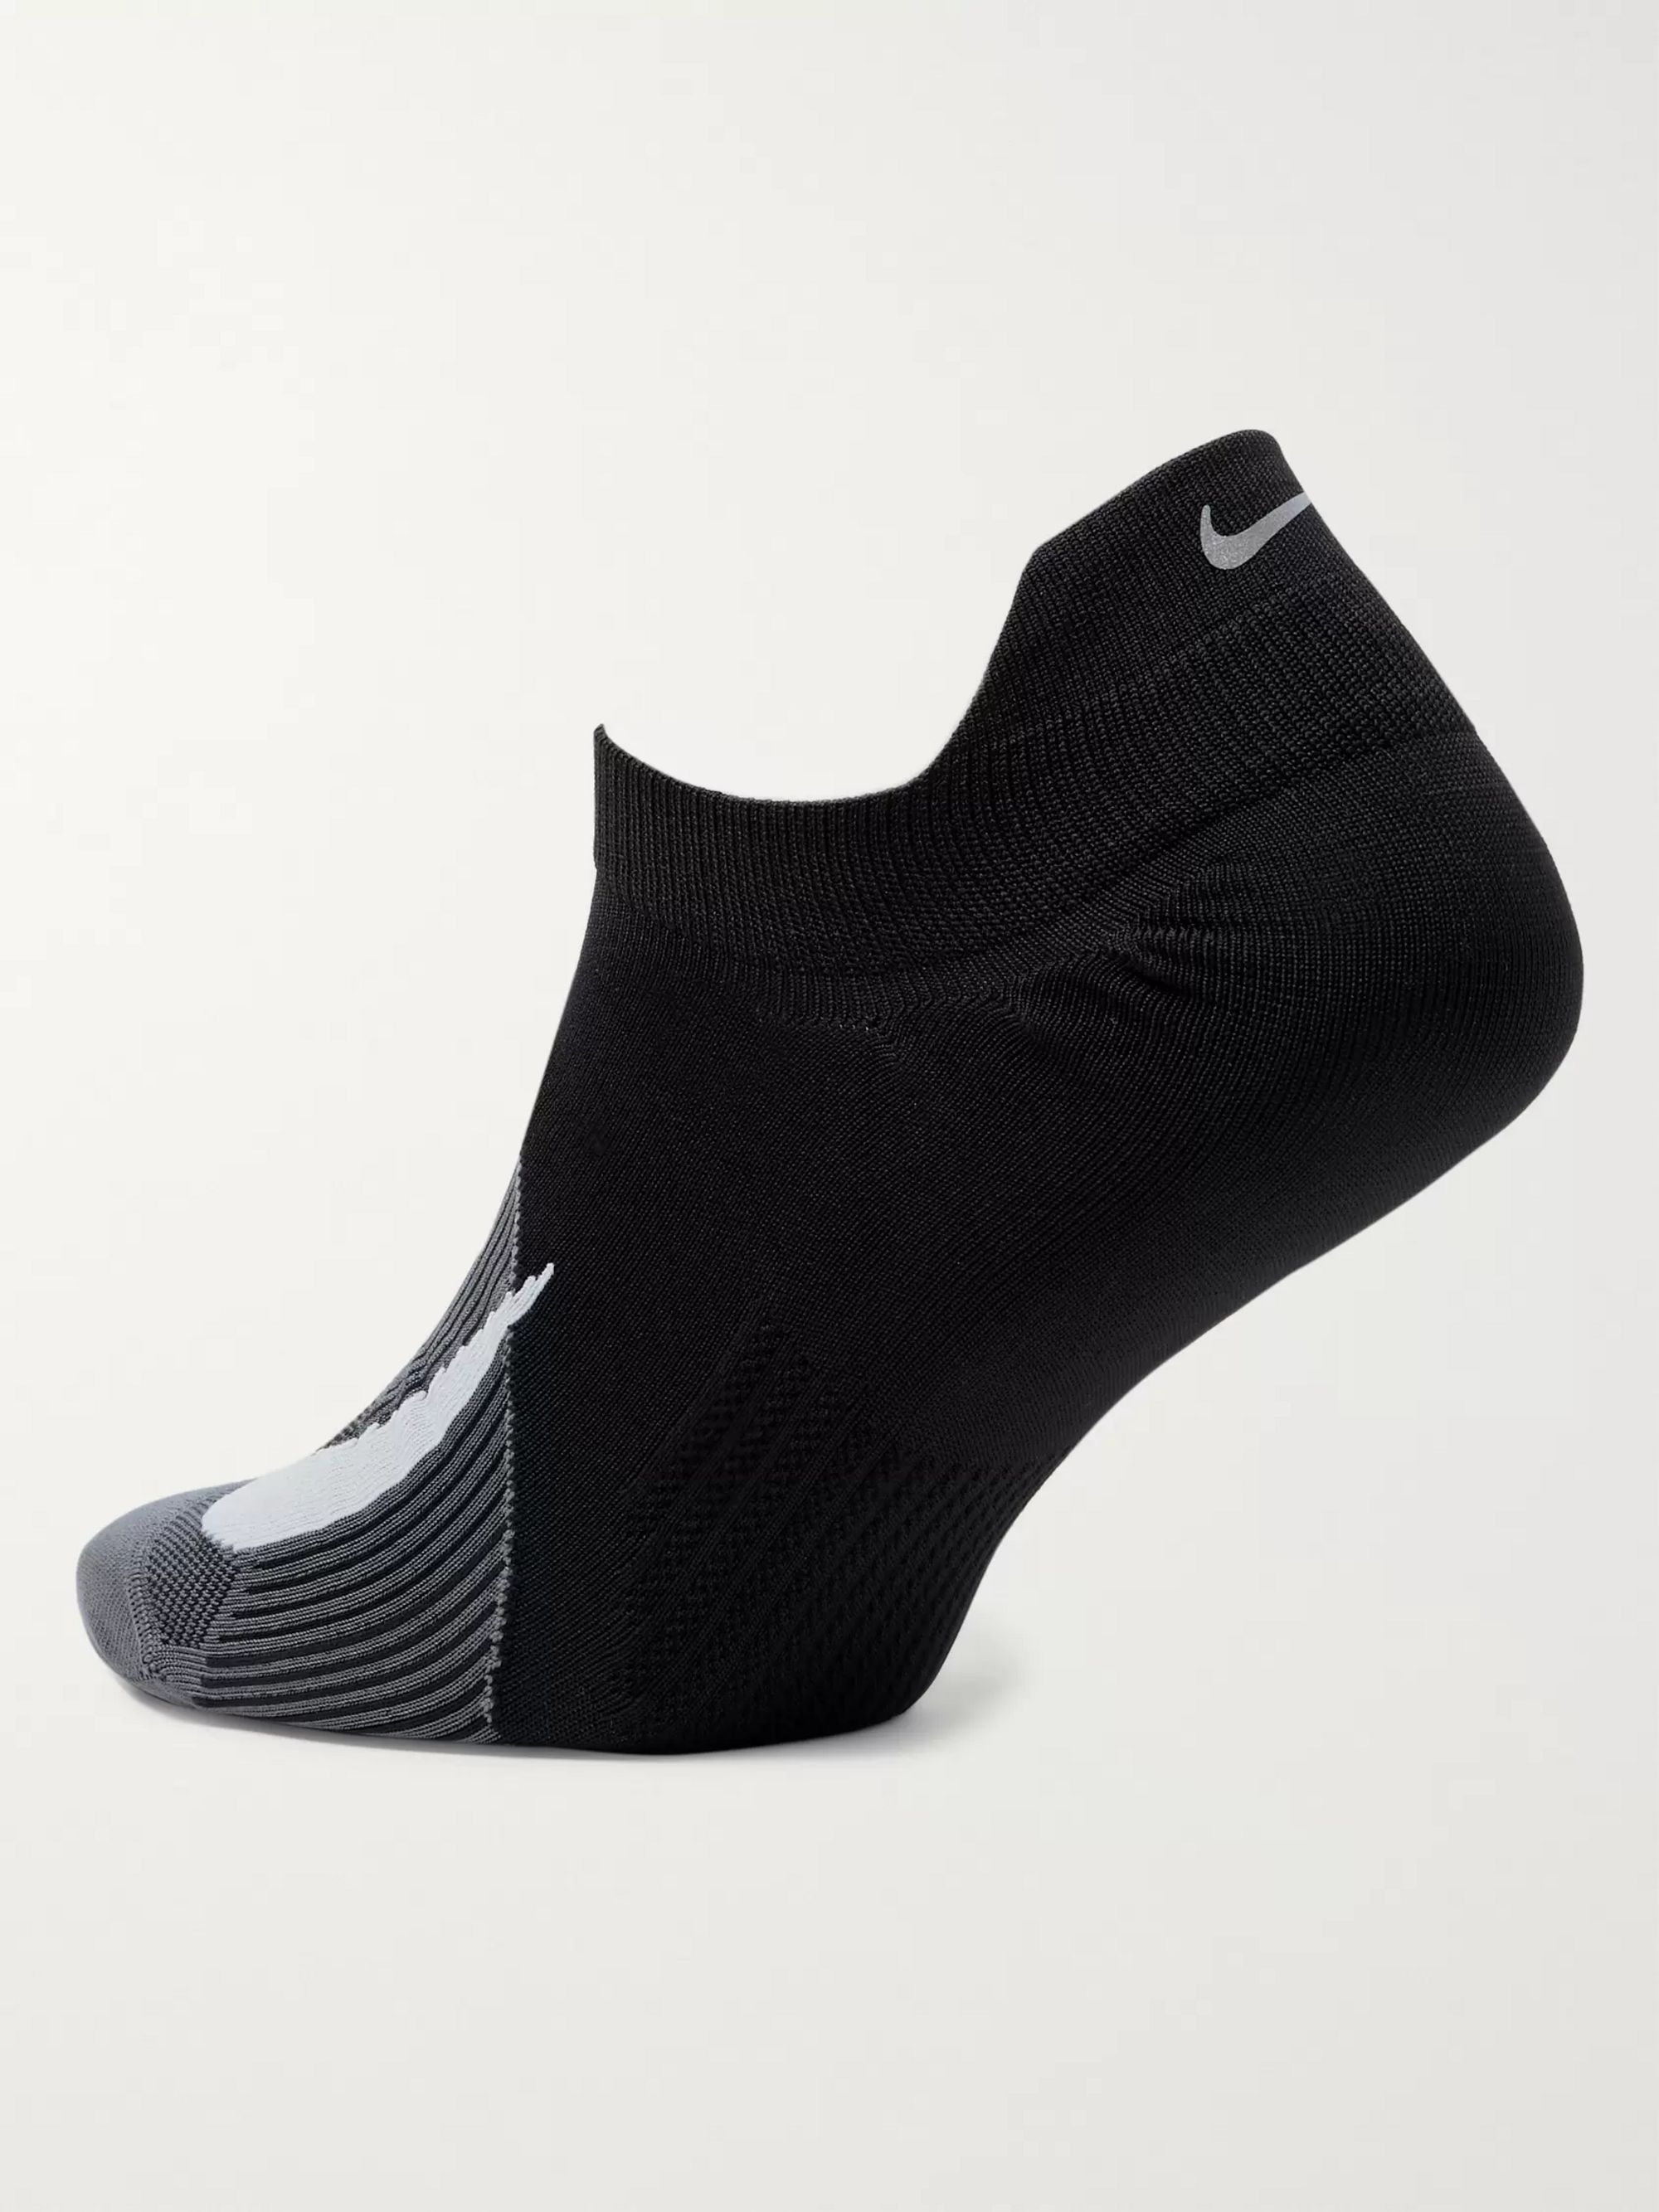 Nike Running Elite Dri-FIT No-Show Socks